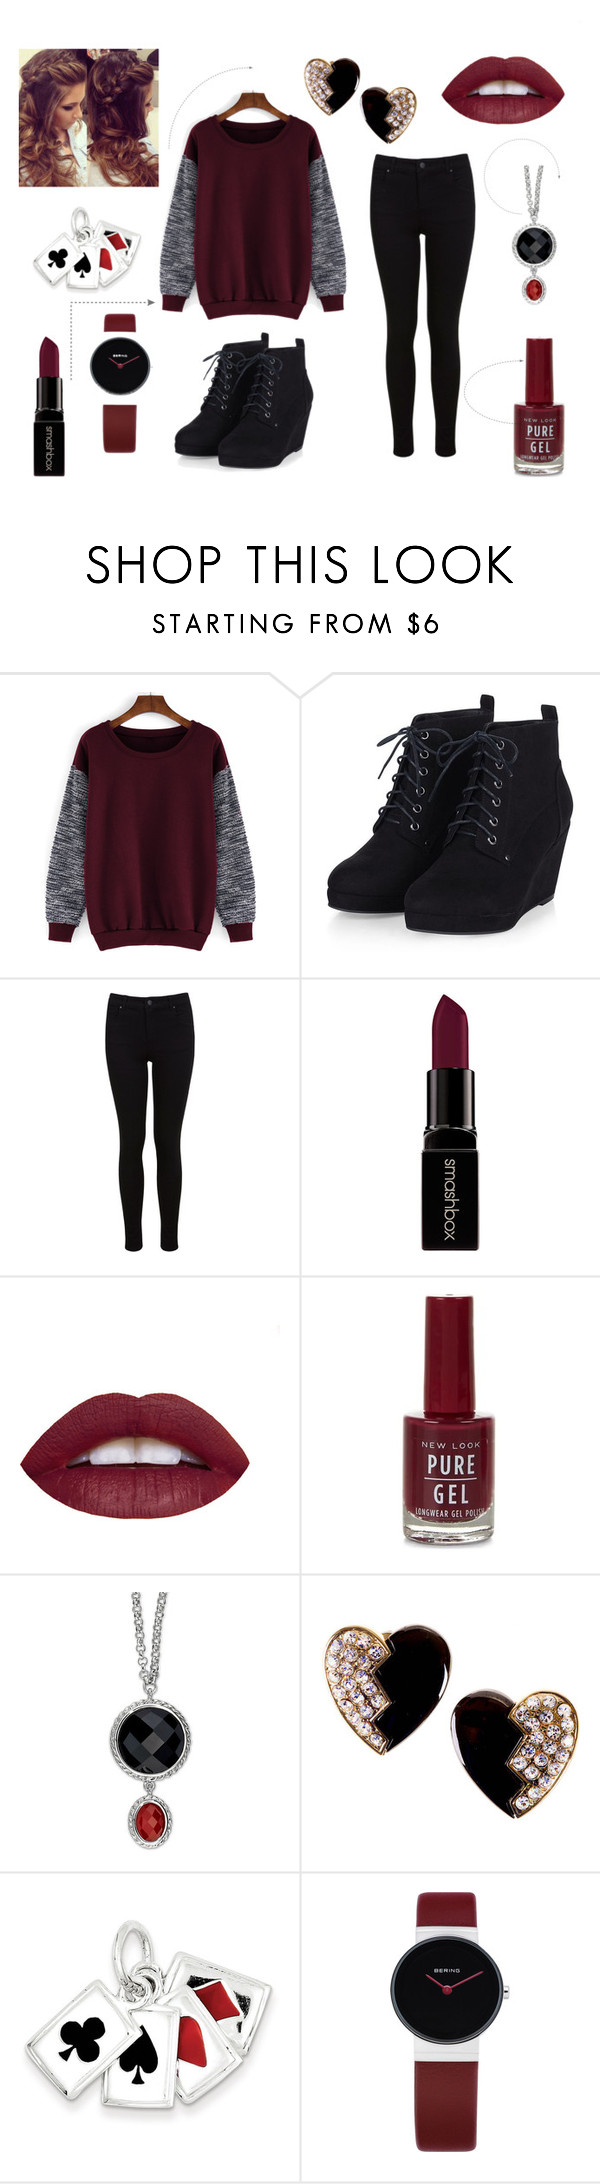 """""""RED"""" by ujvari-katinka on Polyvore featuring Miss Selfridge, Smashbox, Yves Saint Laurent, Kevin Jewelers, women's clothing, women, female, woman, misses and juniors"""